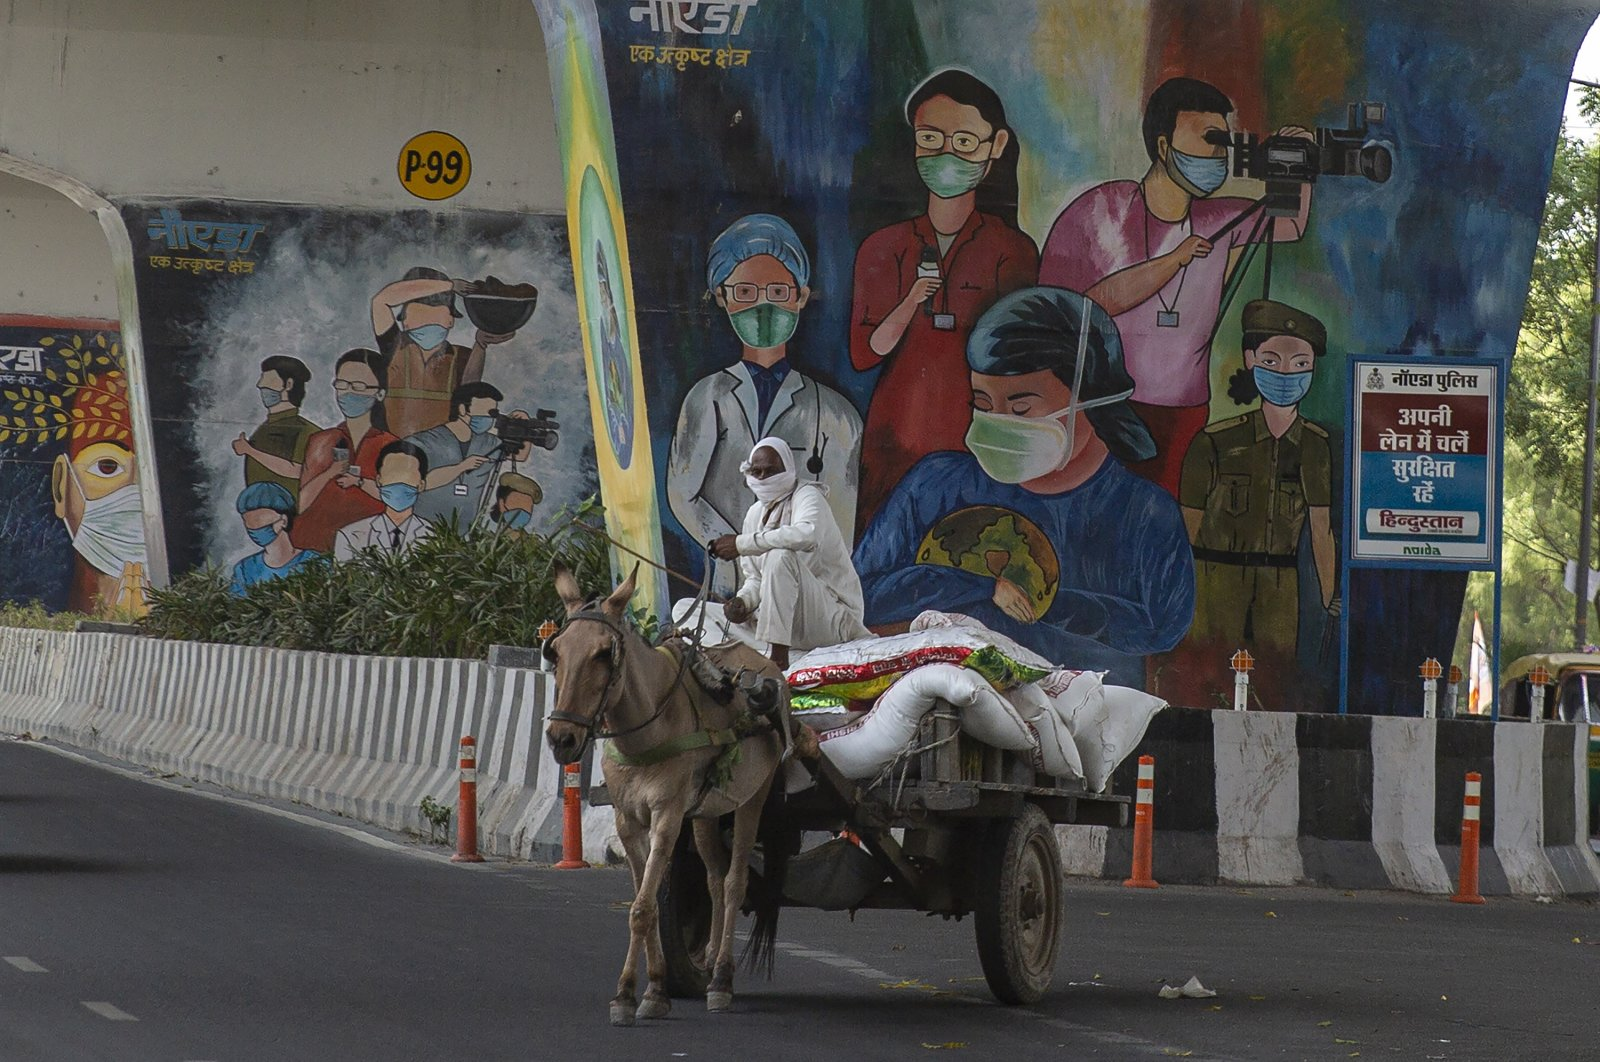 A man rides a horse cart past a mural depicting frontline workers in Noida, a suburb of New Delhi, India, Thursday, April 15, 2021. (AP Photo)